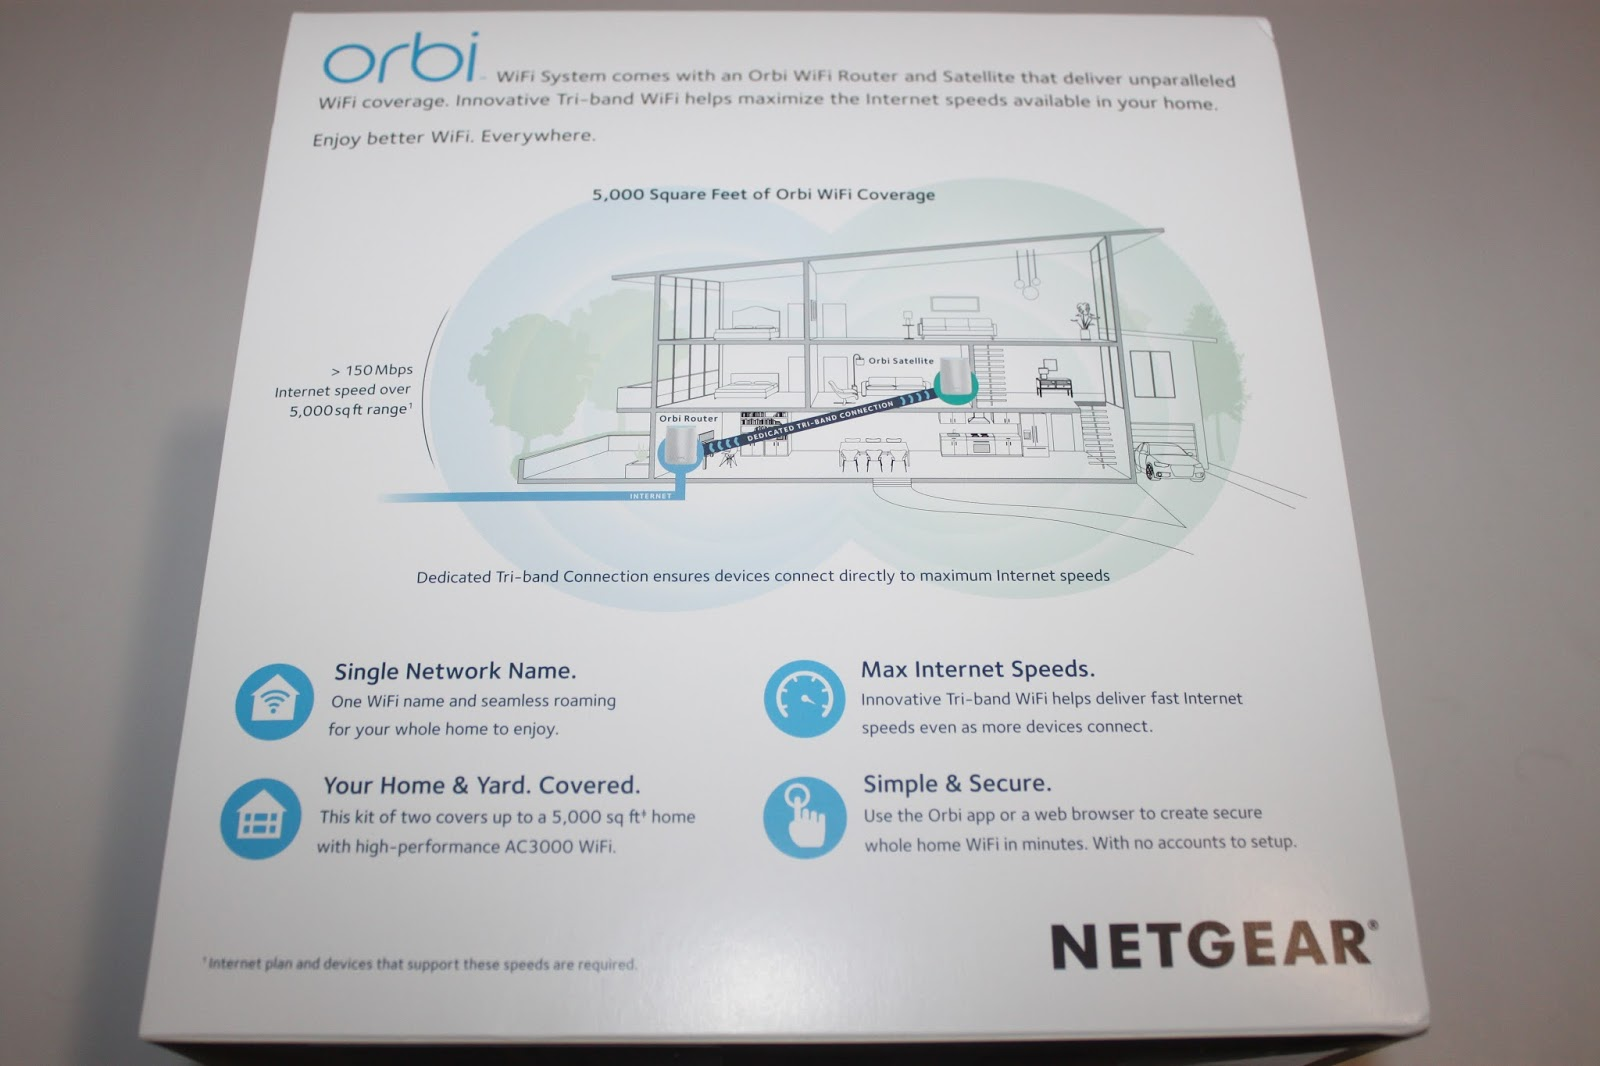 Stereowise Plus: NETGEAR Orbi WiFi System AC3000 RBK50 Review on